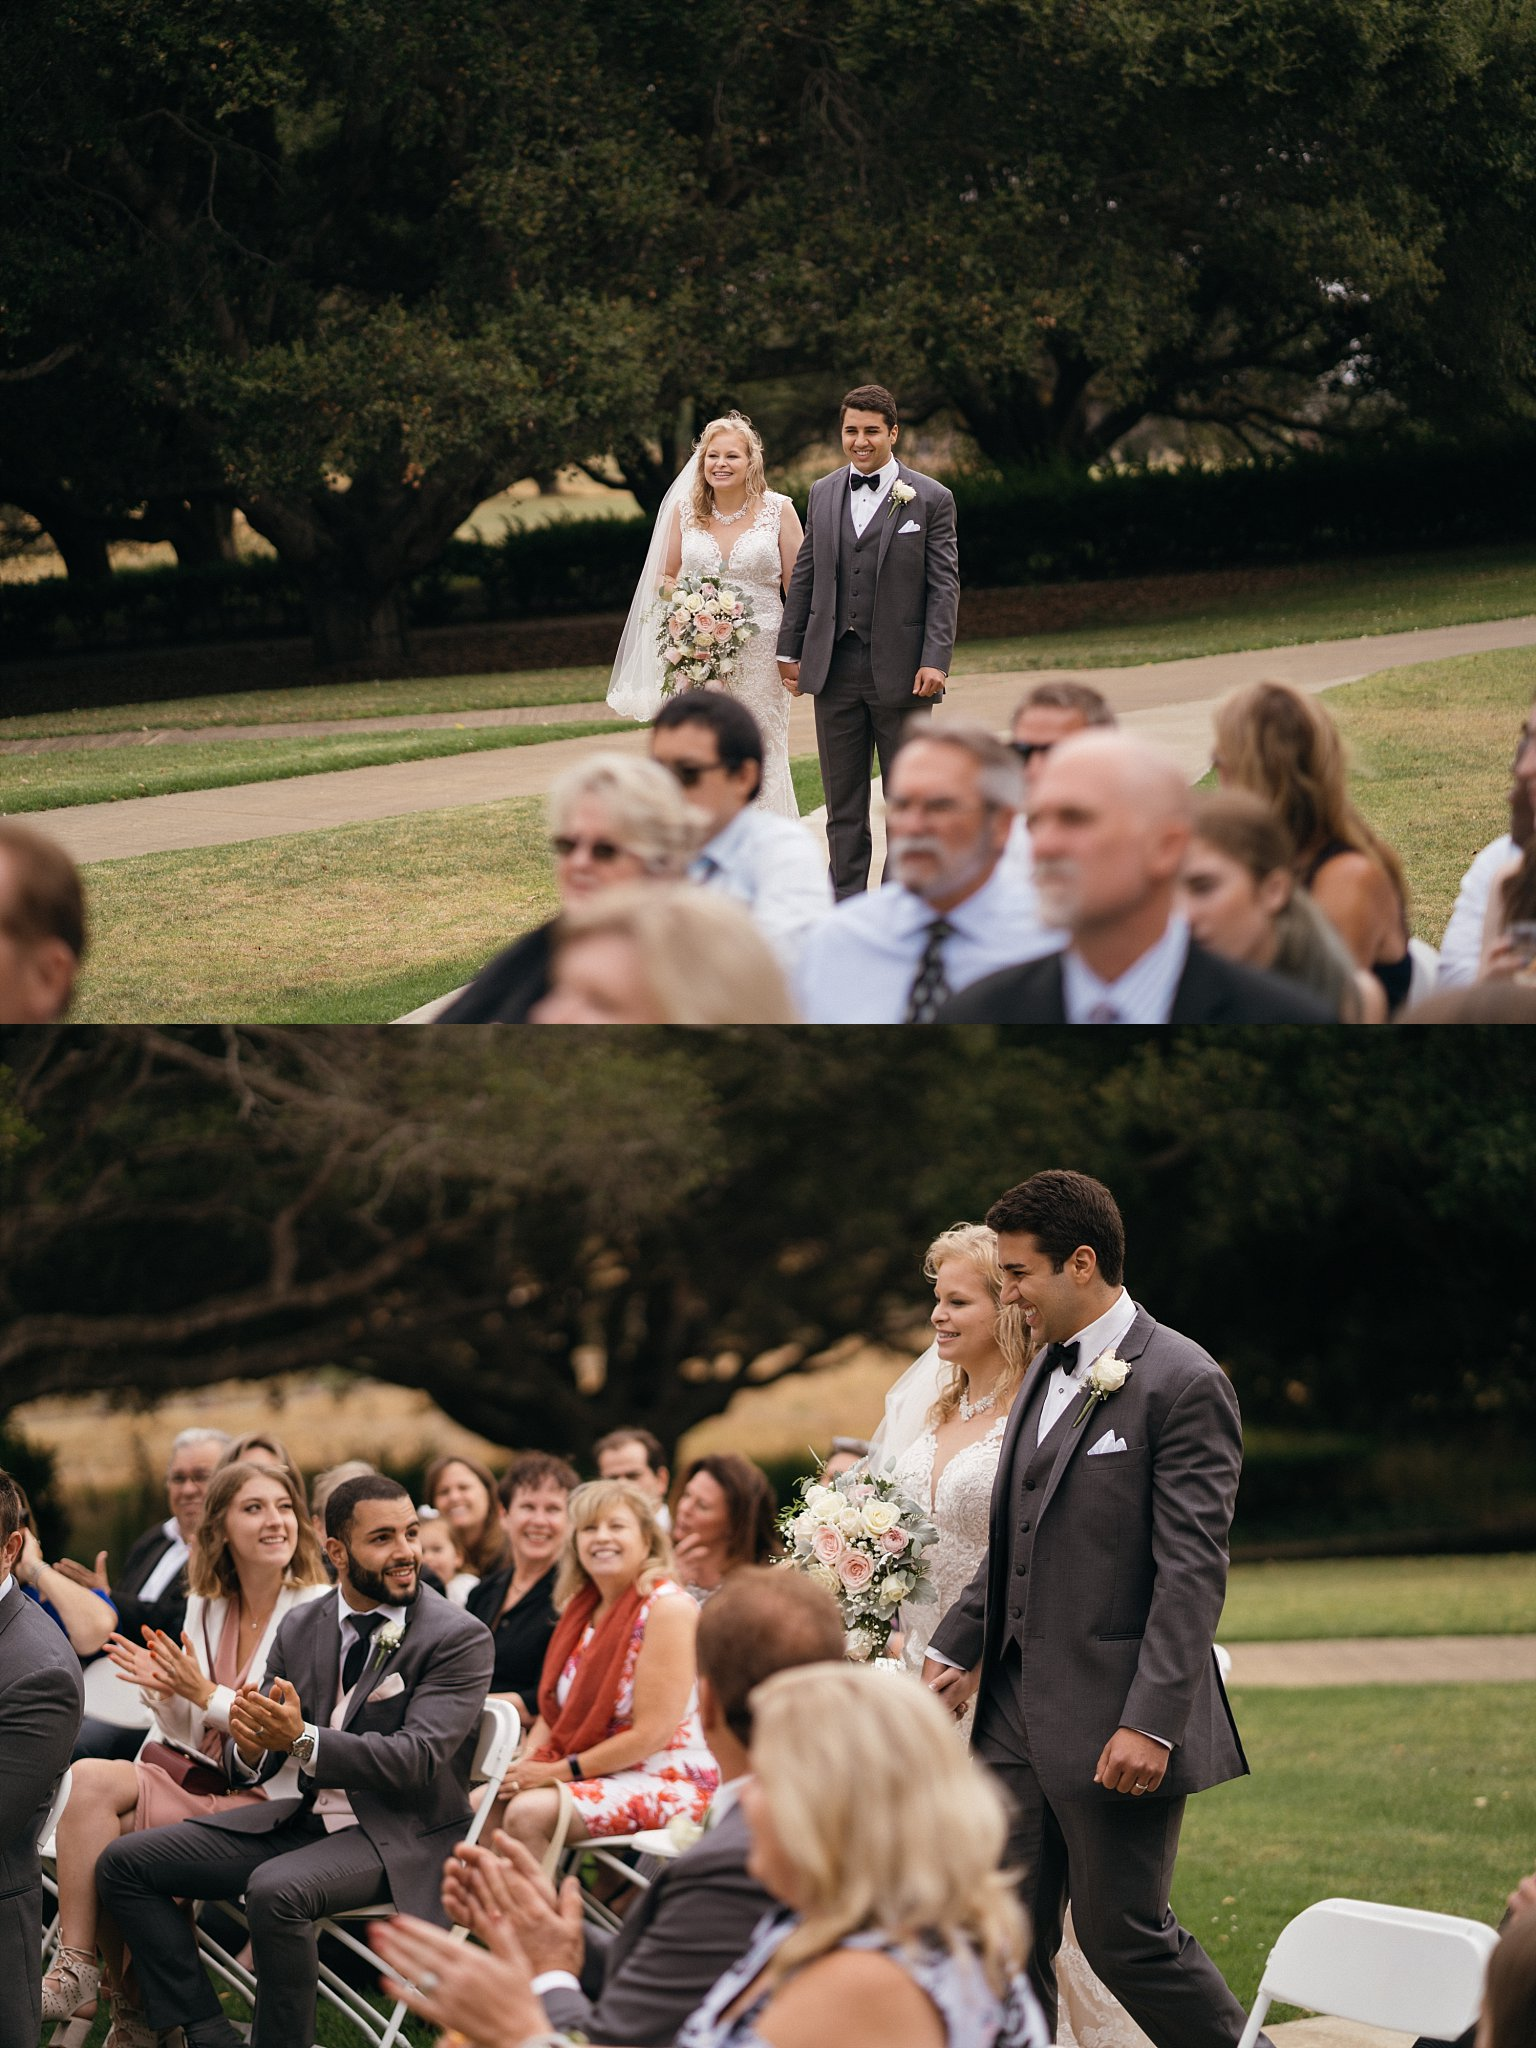 monterey-wedding-photographer-pebble-beach-church-in-the-forest-wedding-bride-groom-morgan-anthony_0044.jpg